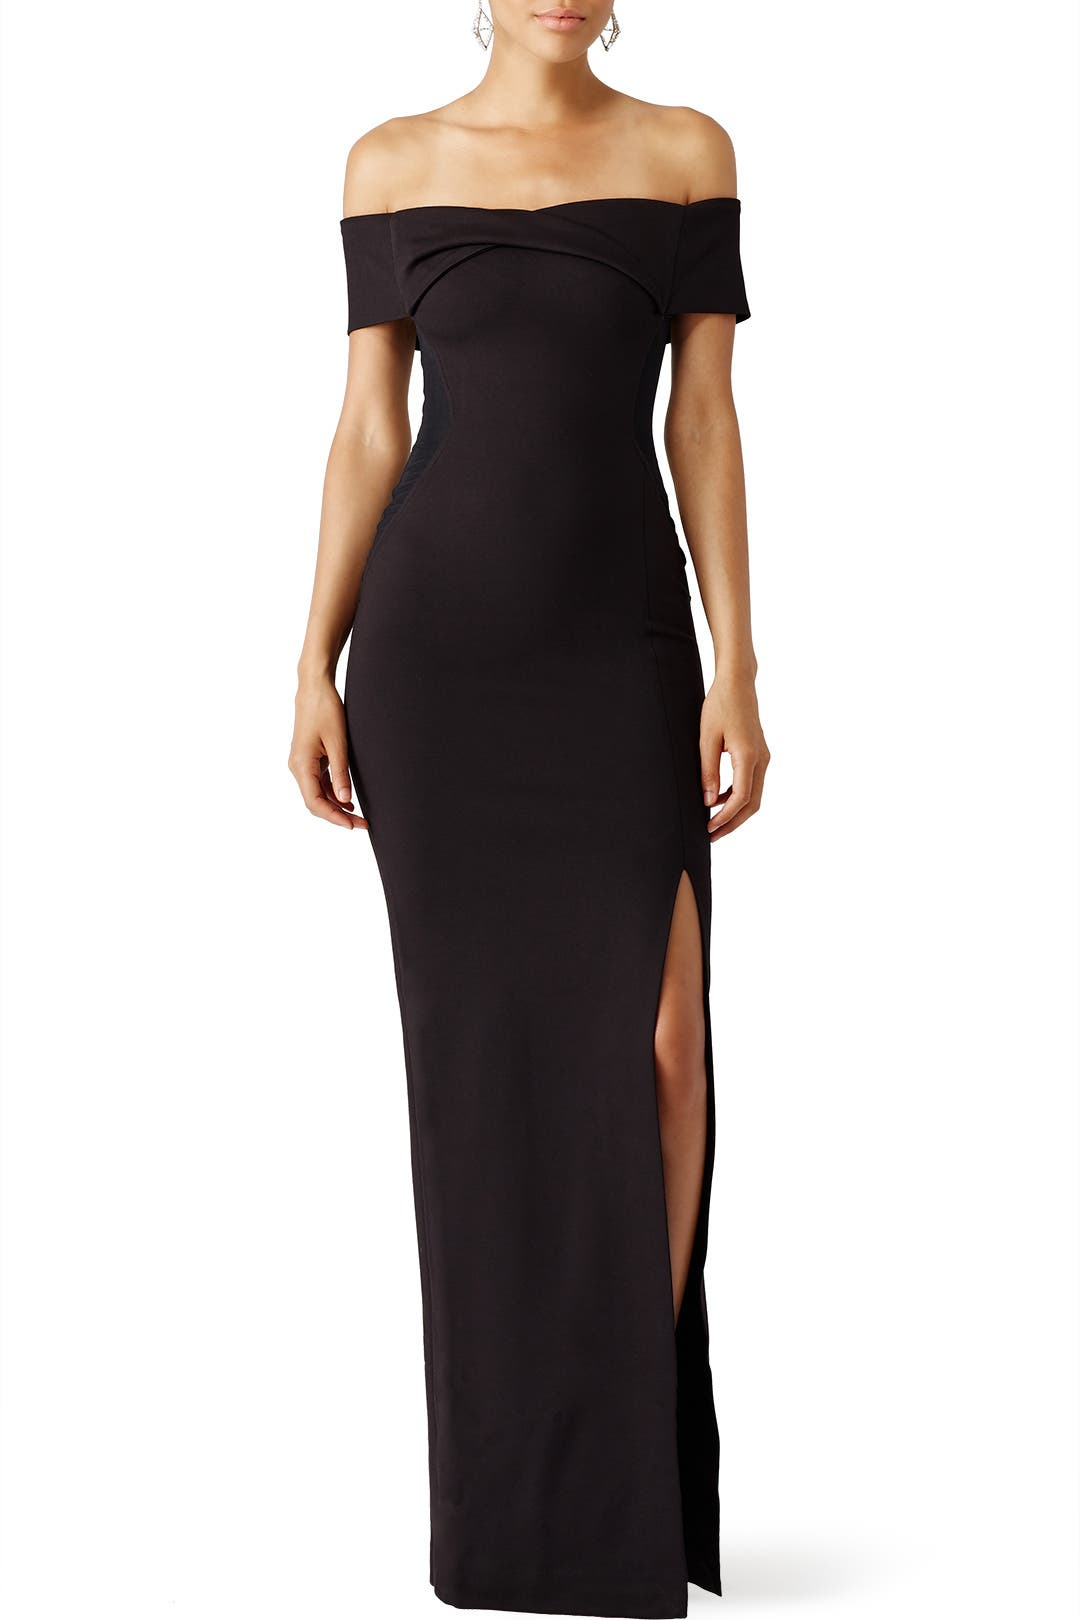 Black Knot Front Gown By Nicholas For 59 Rent The Runway